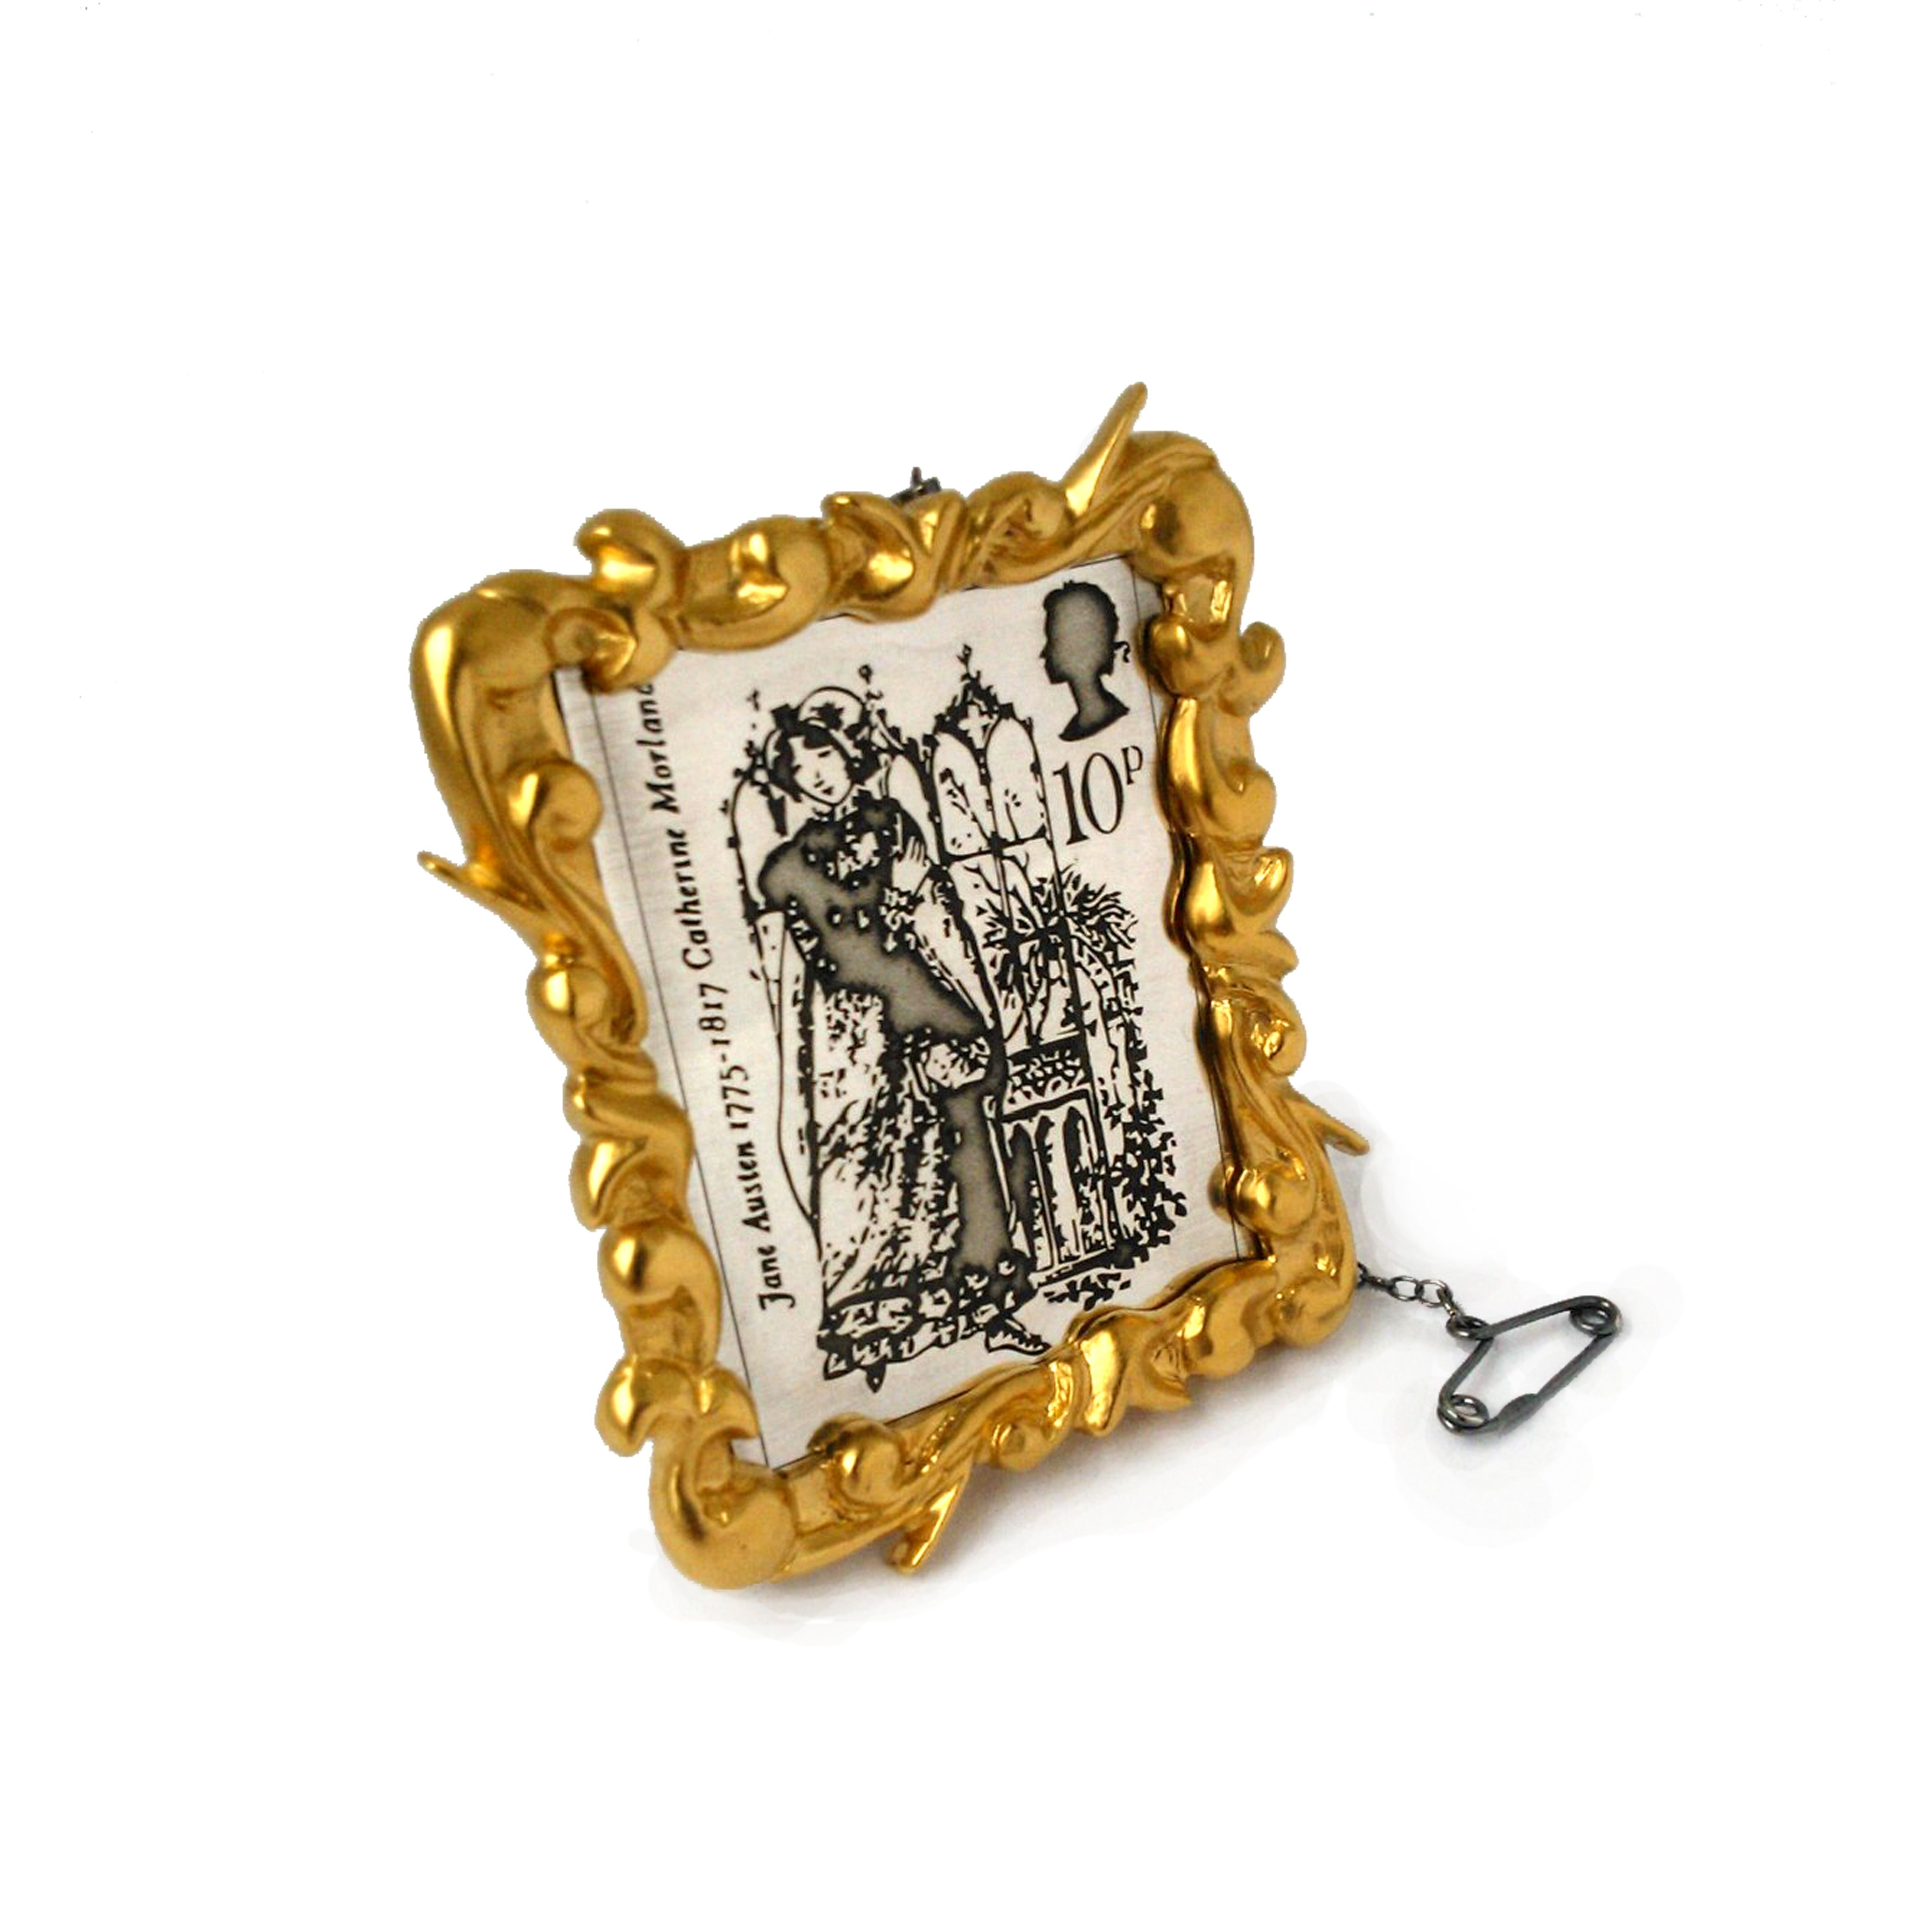 Timeless Classics - 1 of 4 brooches inspired by jane austen 1975 stamps. Silver with gold vermeil on the frame.